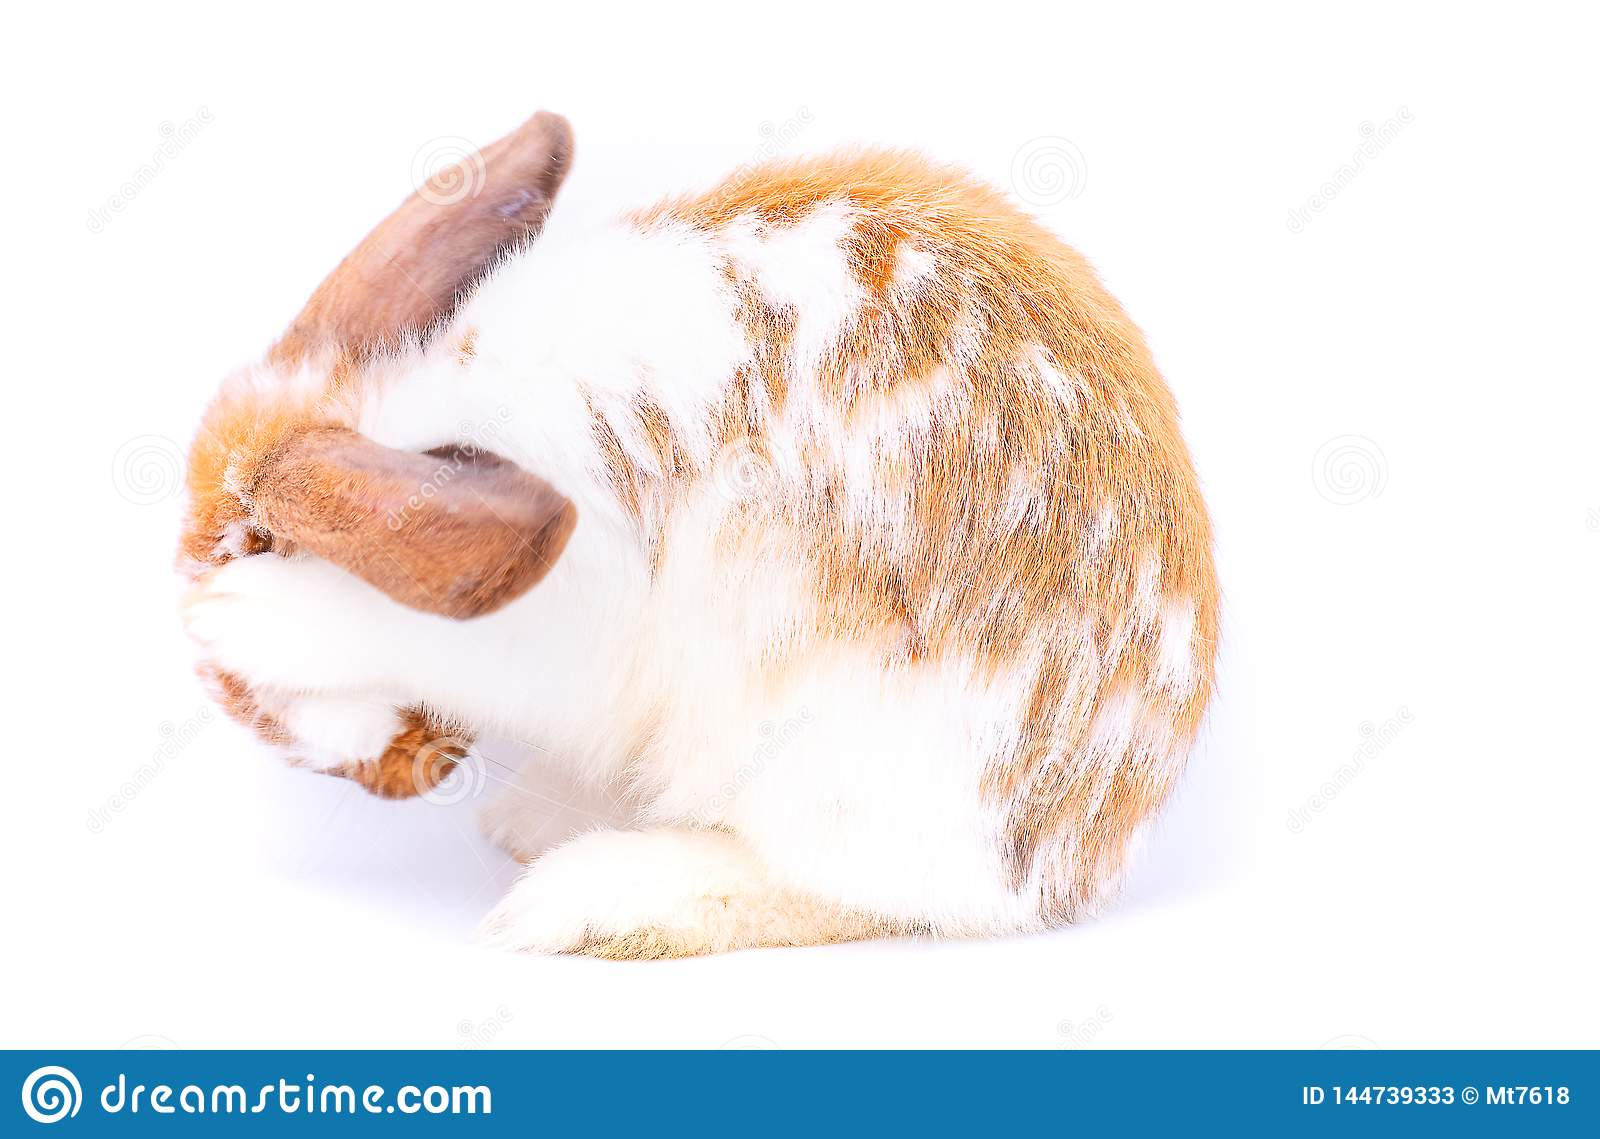 Little white and brown bunny rabbit use front legs to clean its head on white background